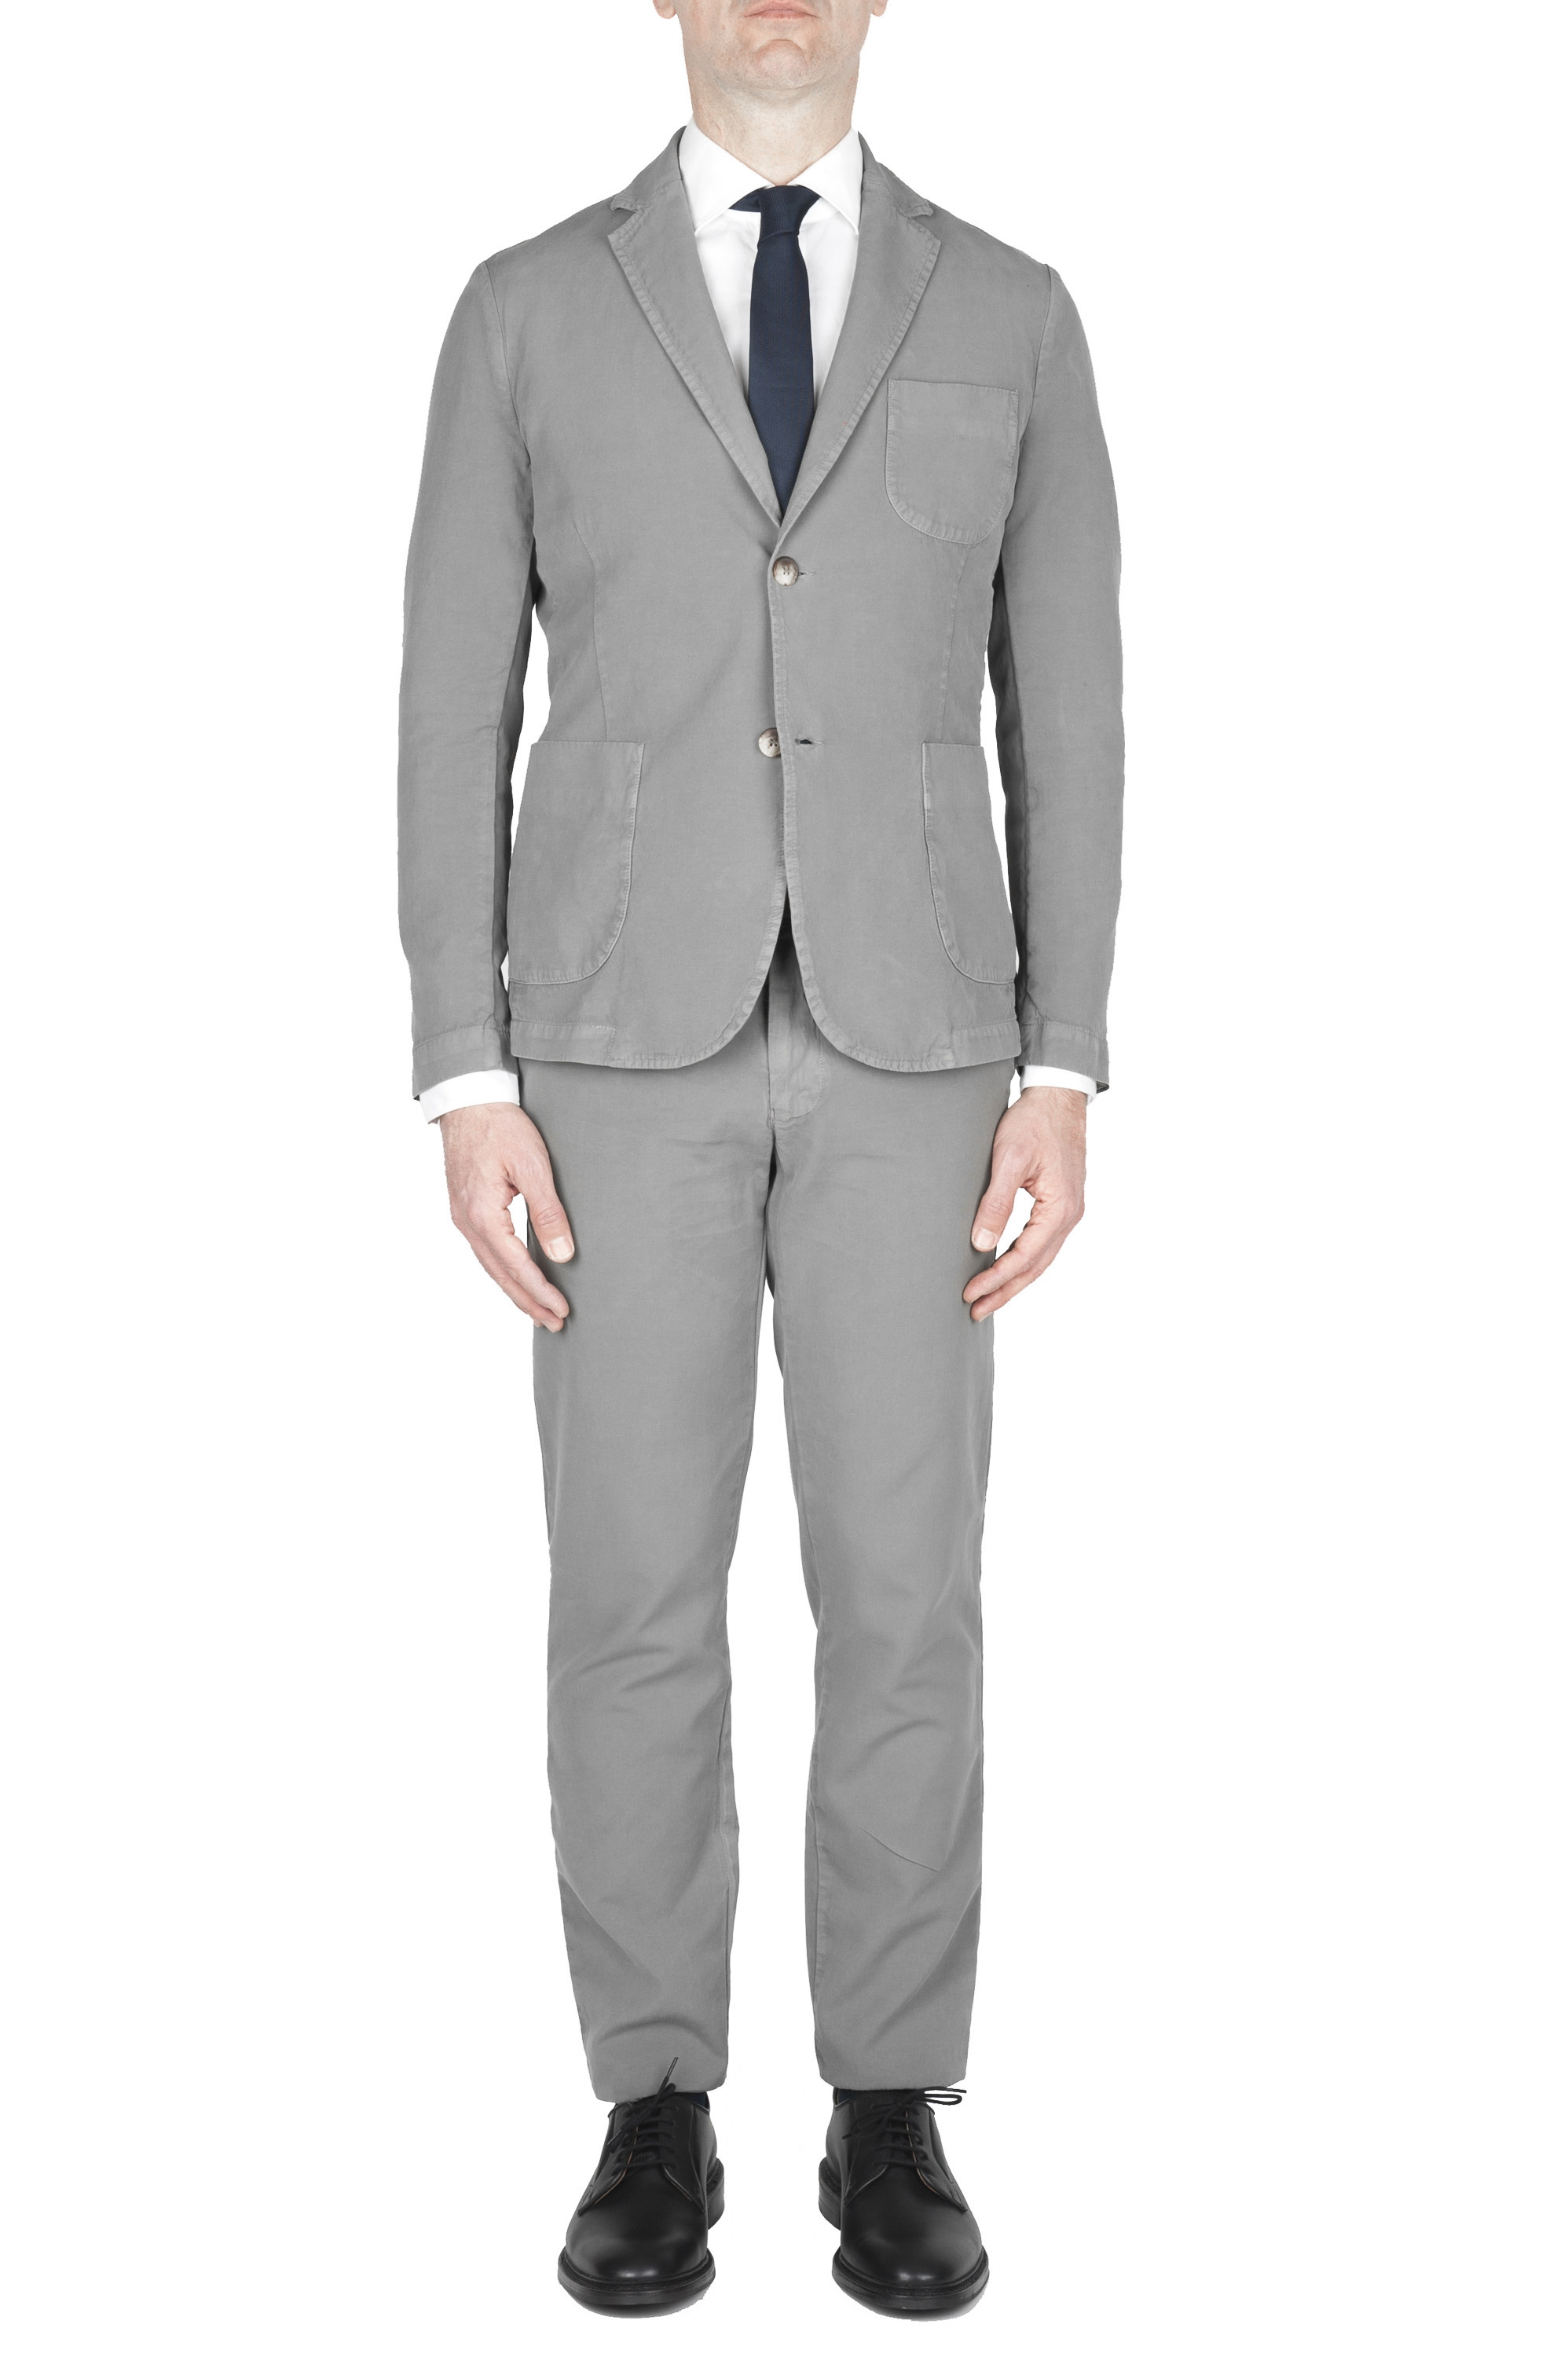 SBU 01743 Grey cotton sport suit blazer and trouser 01